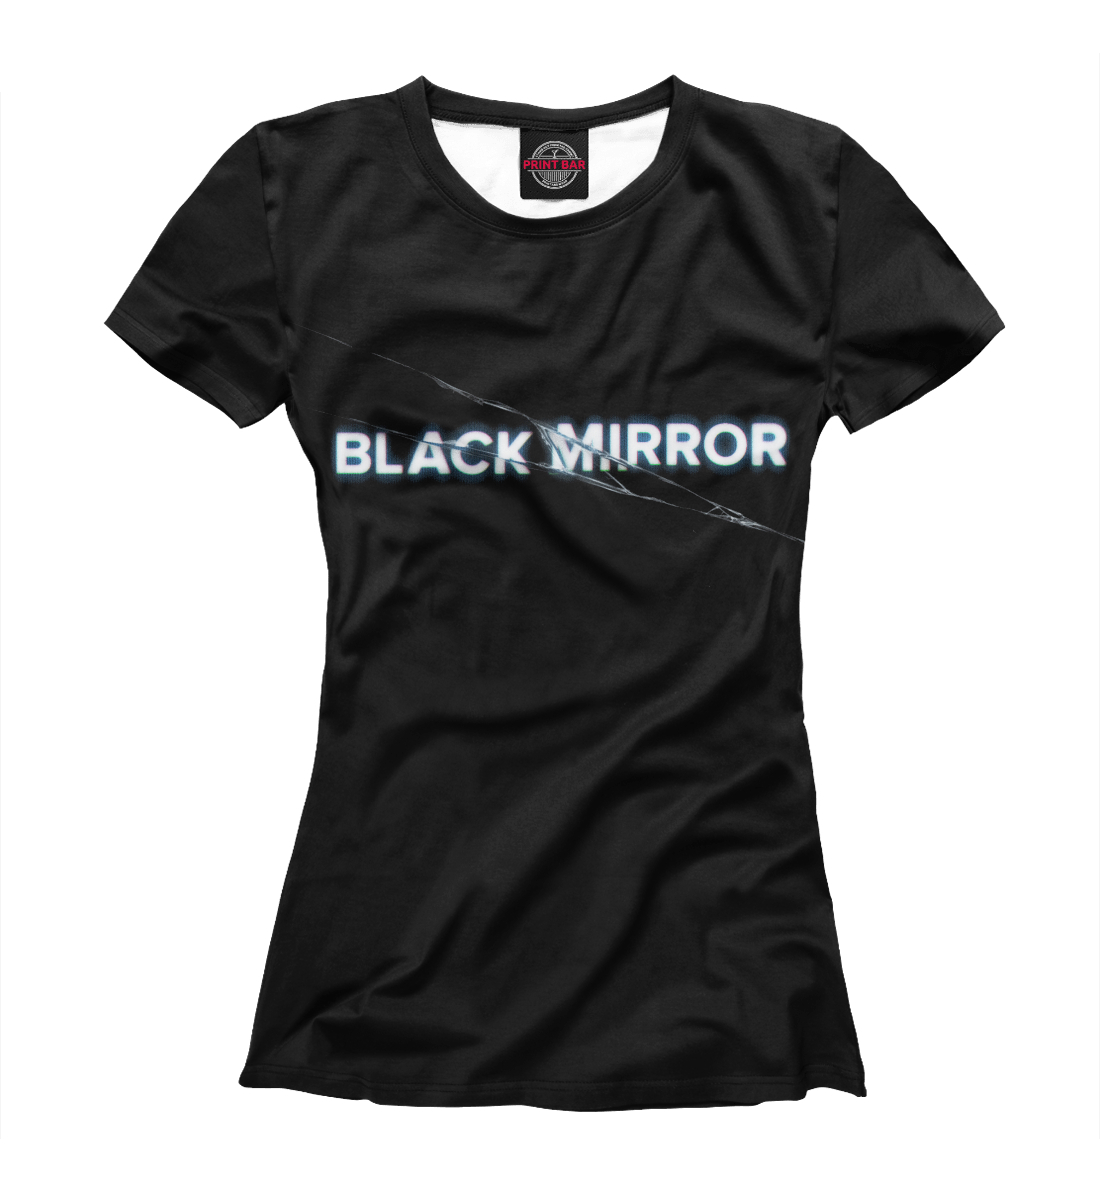 Купить Black Mirror, Printbar, Футболки, BLM-135333-fut-1